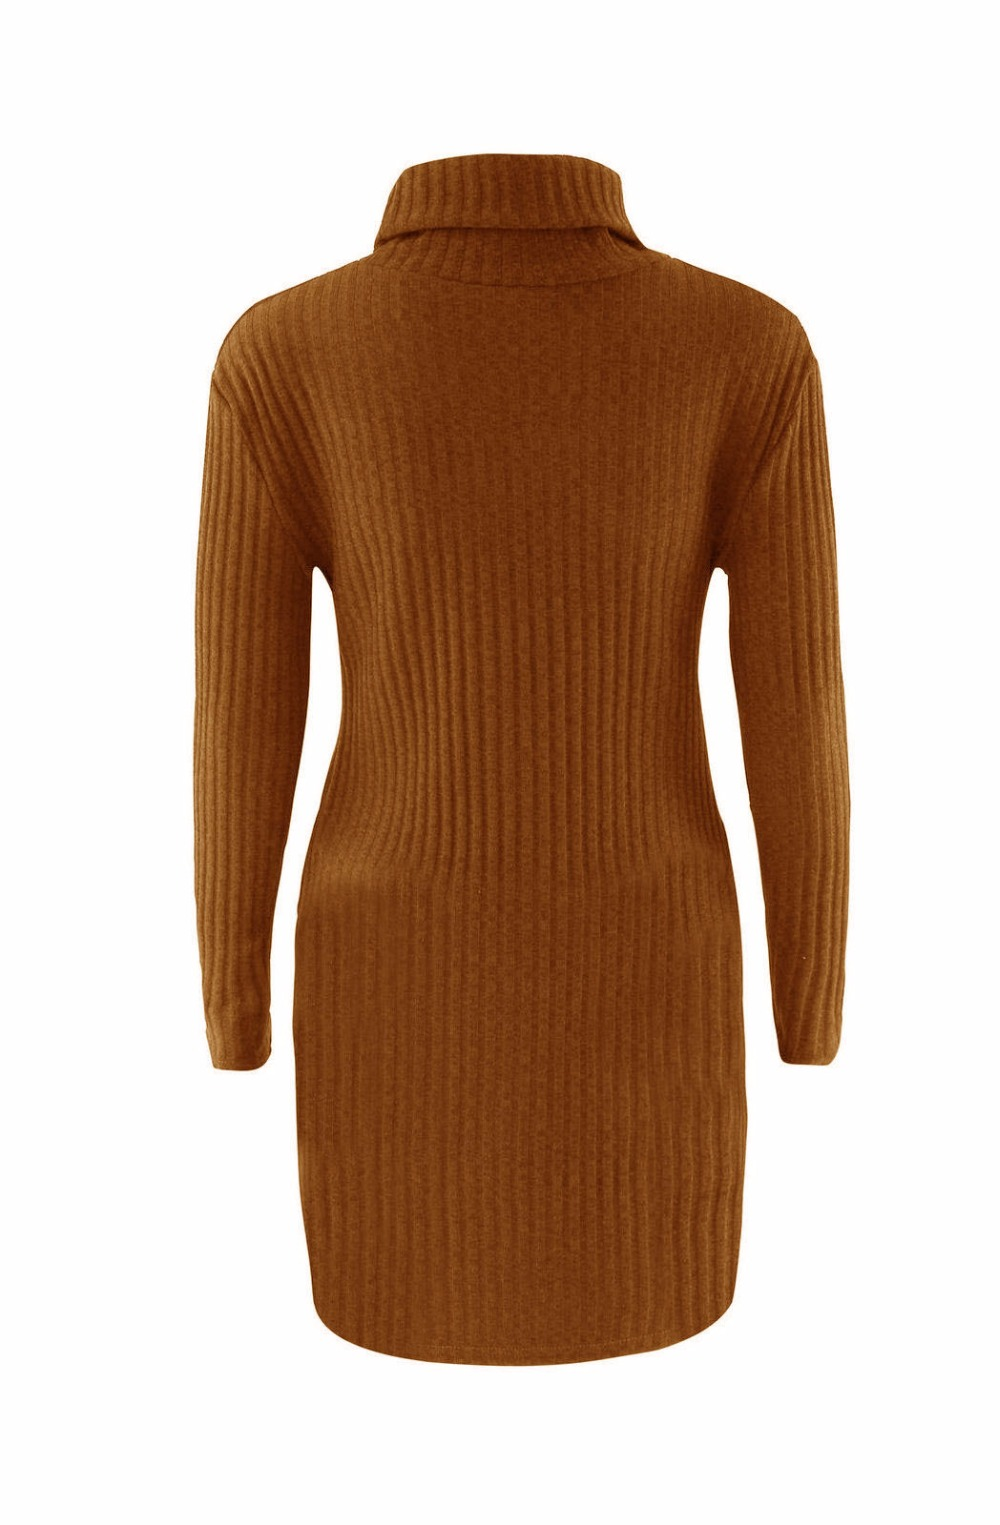 Turtleneck Long knitted pullover sweater, Women's Jumper, Casual Sweater 46